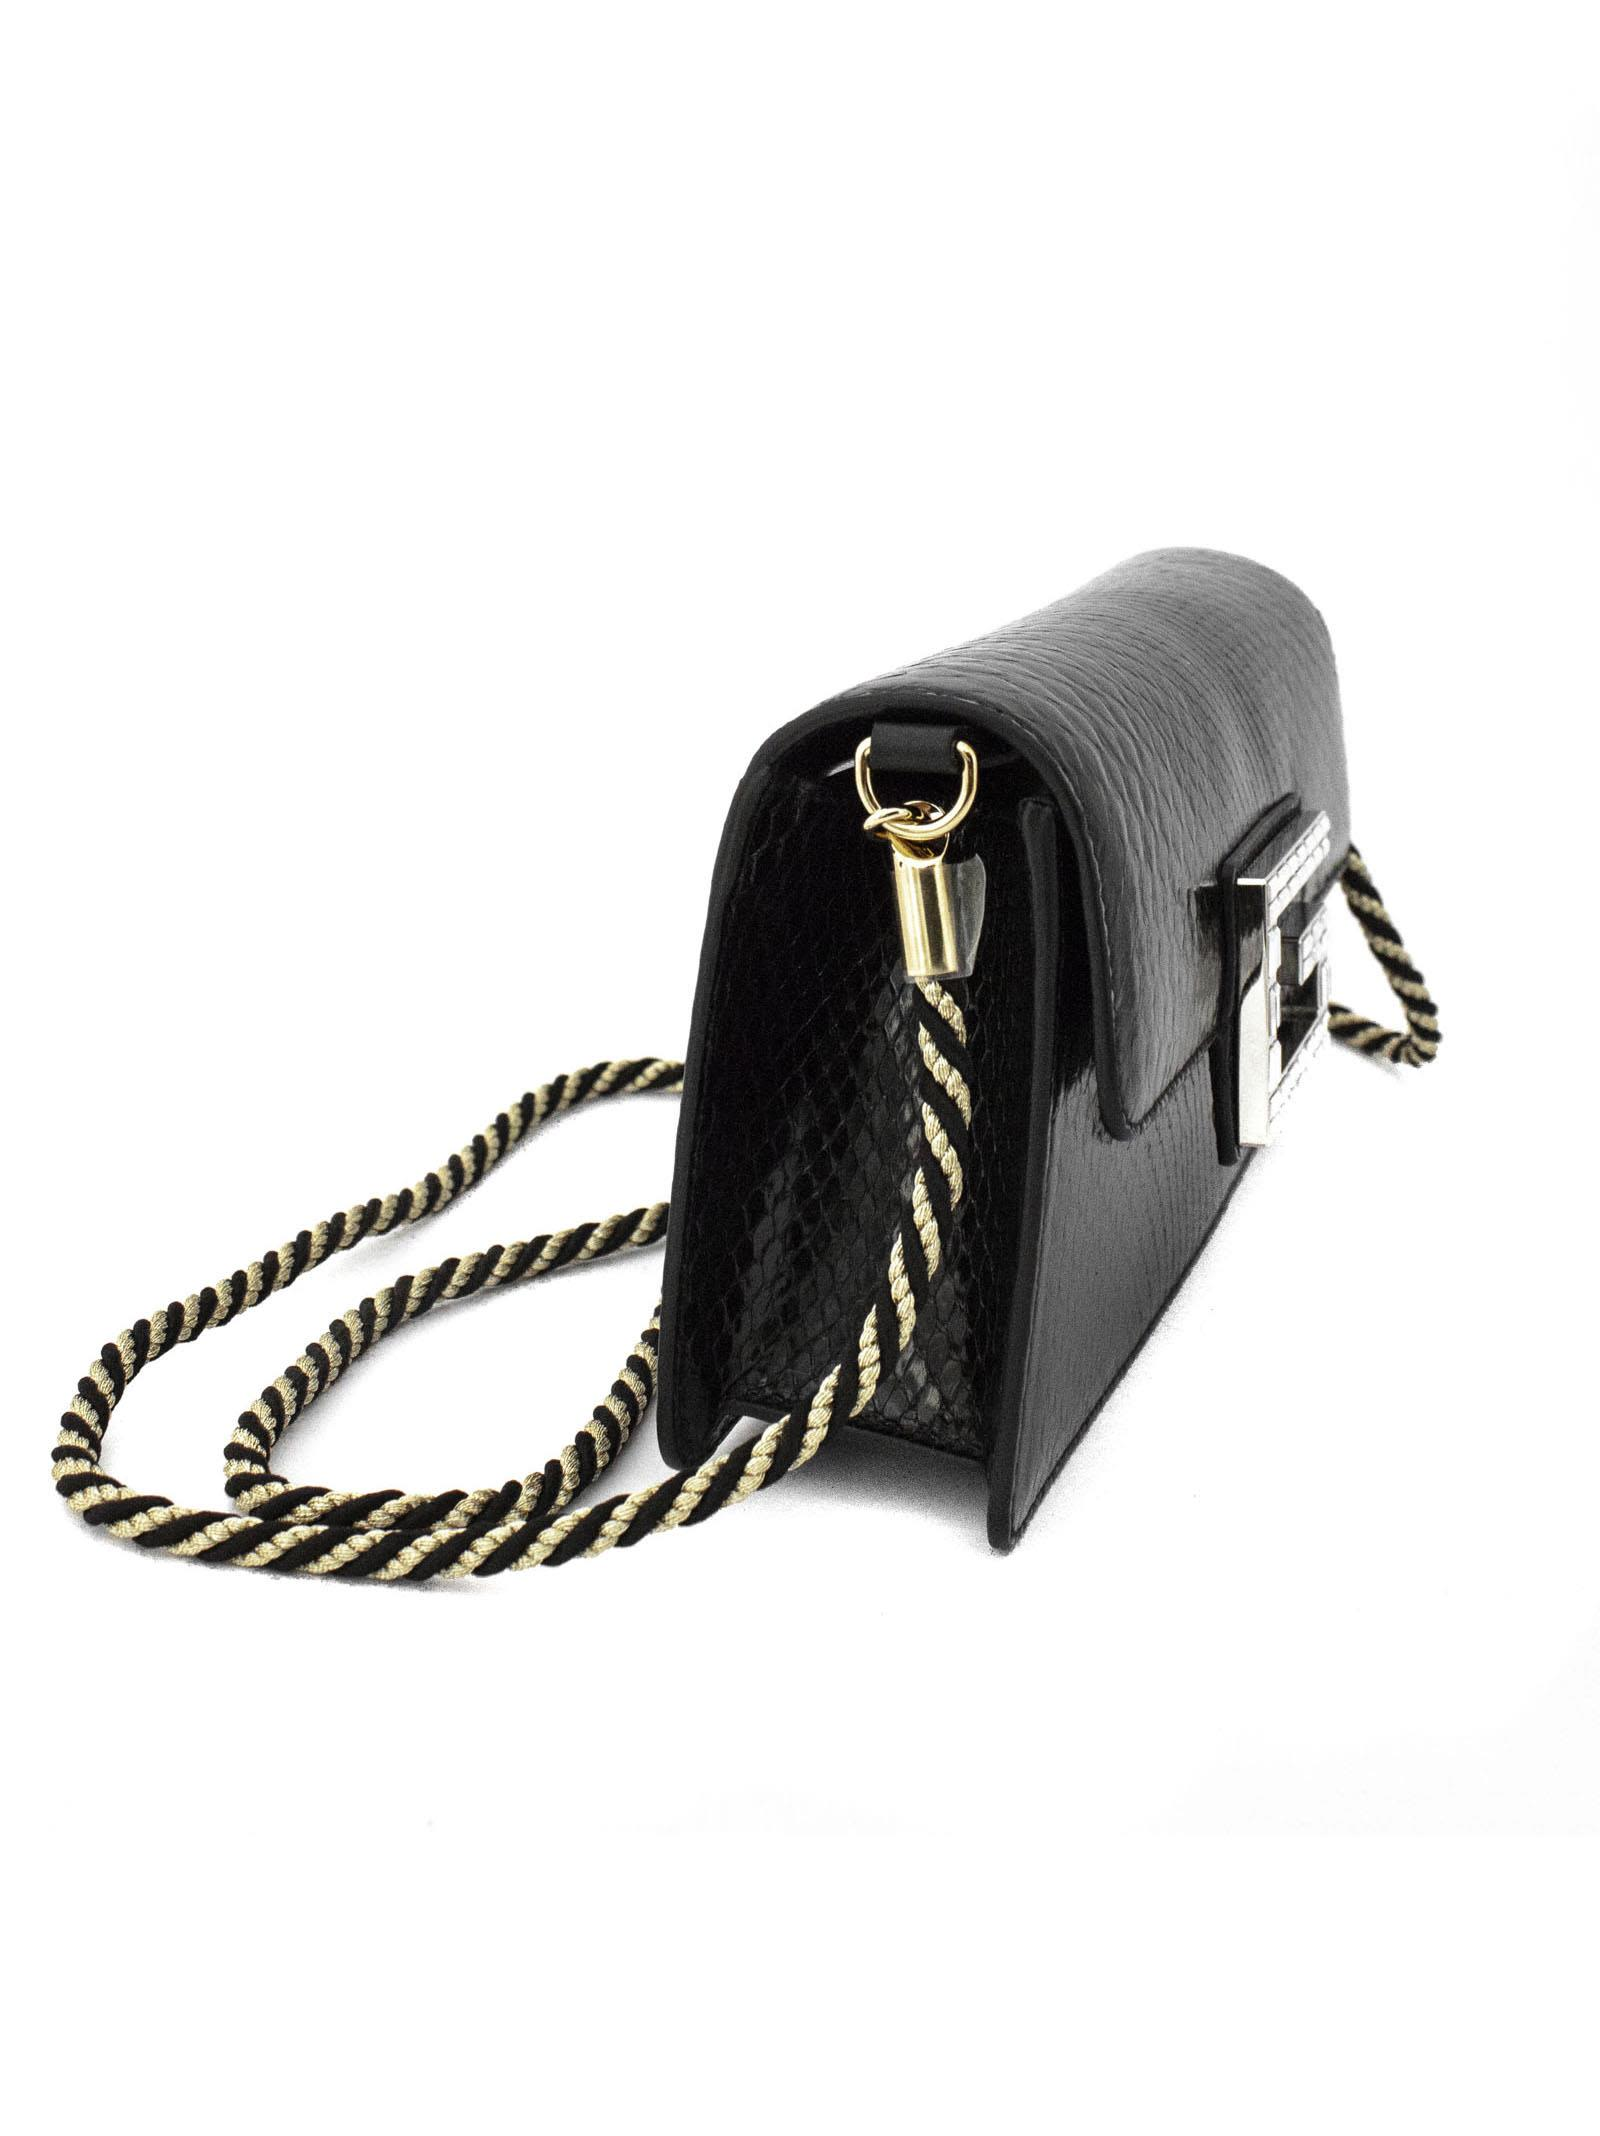 257a7286d39 Gucci Gucci Black Python Shoulder Bag With Square G. - Nero ...